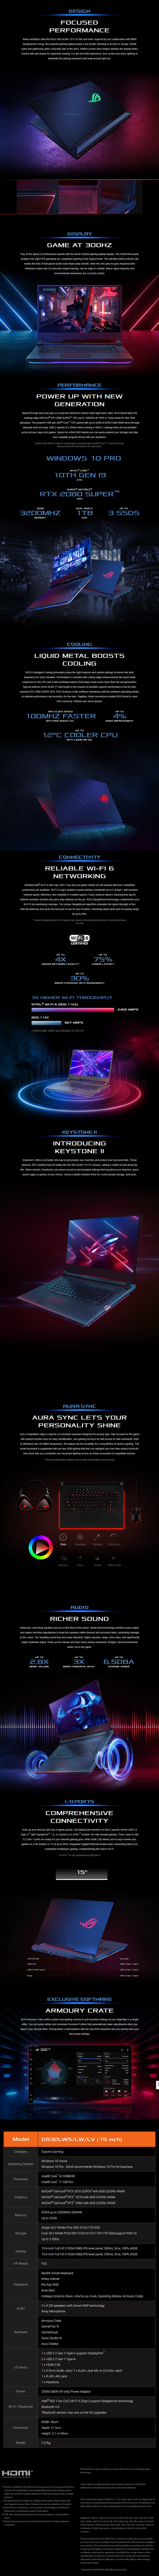 "ASUS ROG Strix SCAR 15 15.6"" 300Hz Gaming Laptop i7-10875H 8GB 1TB RTX2070S W10H - Overview 1"